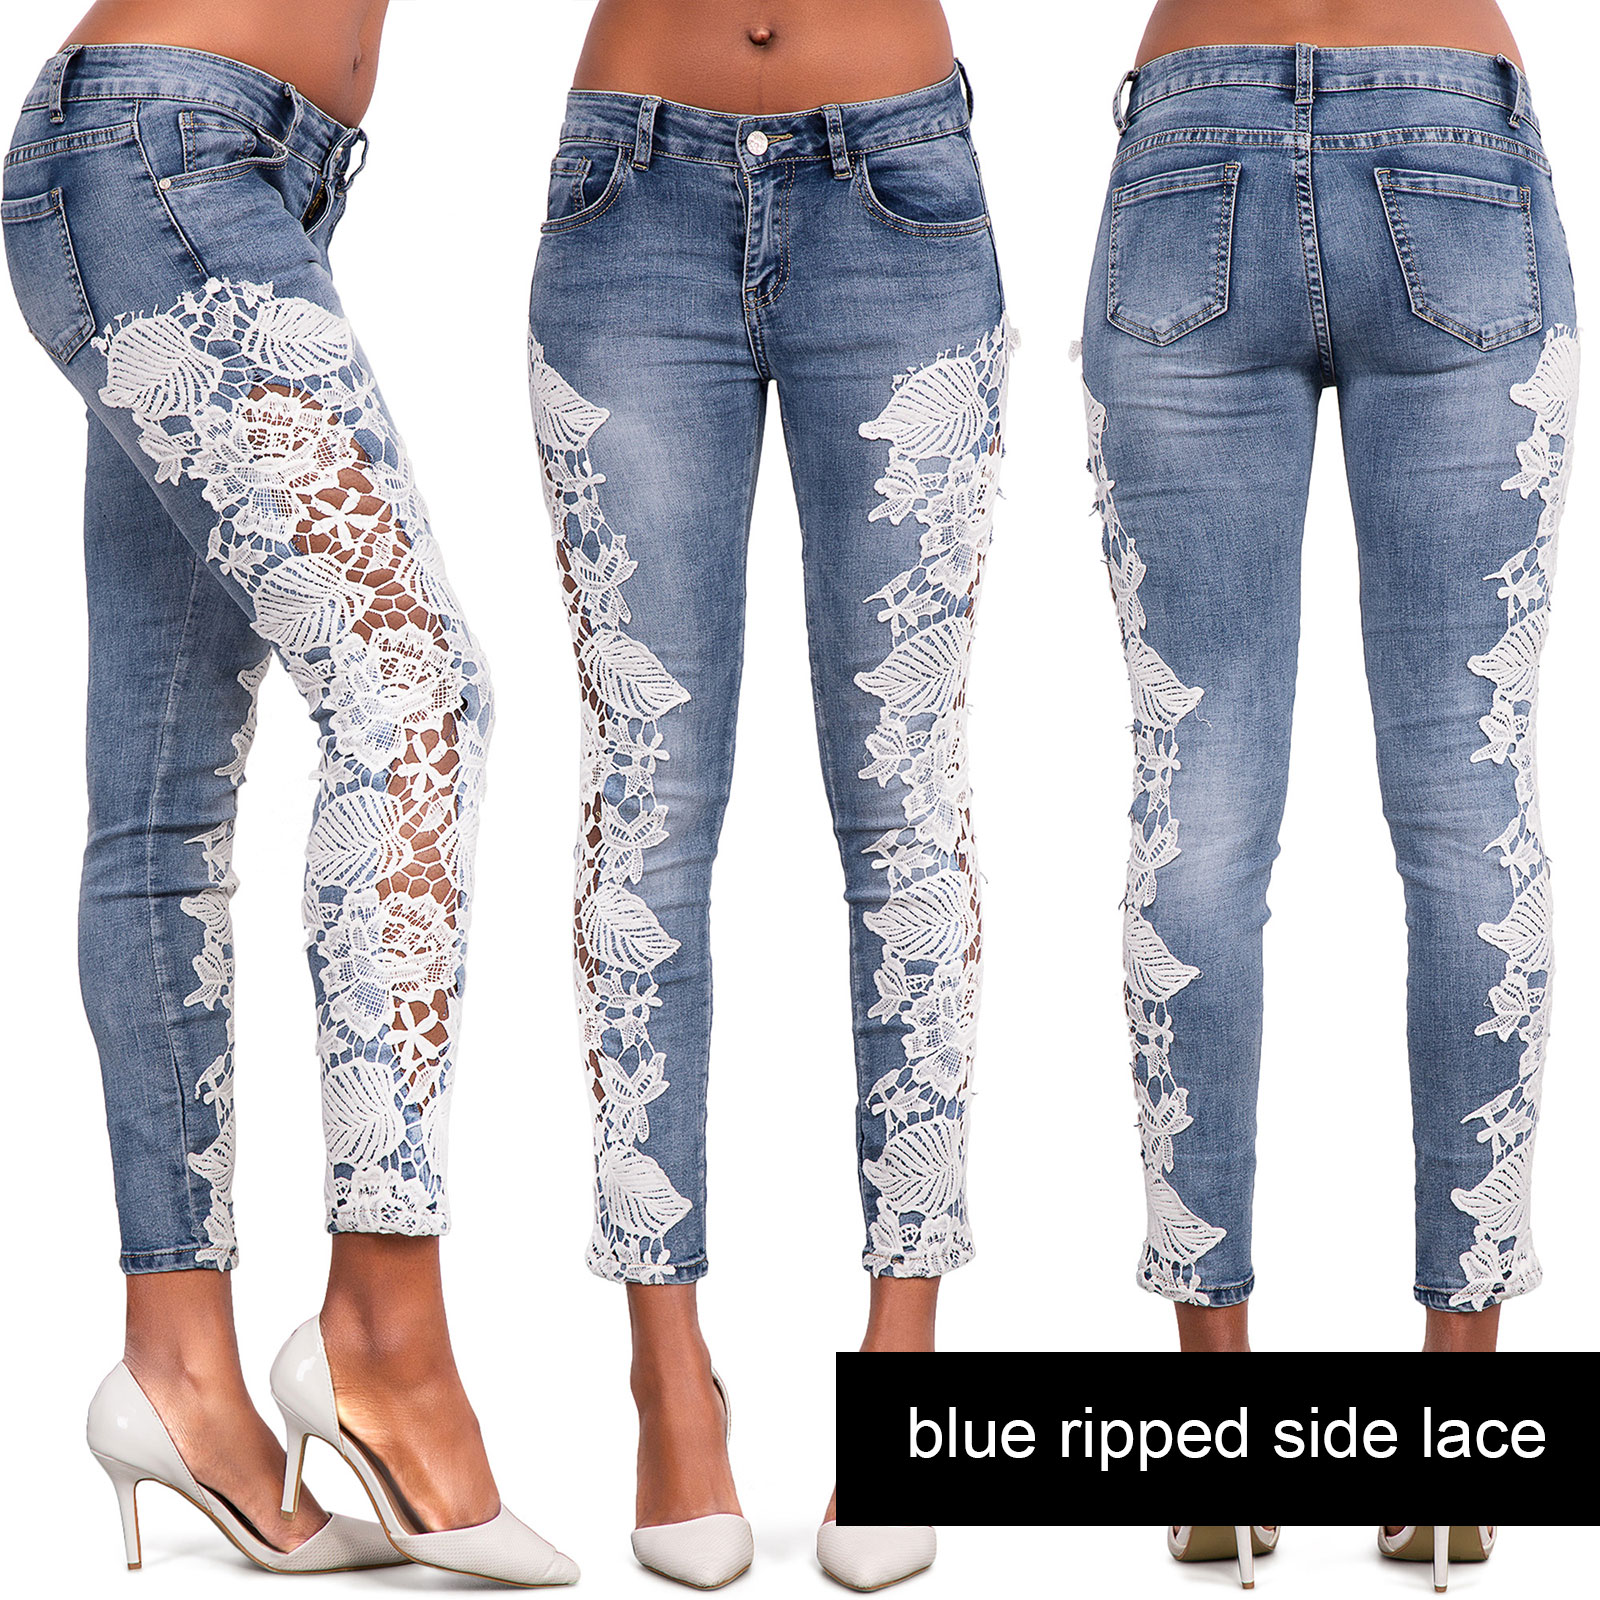 Ripped knee jeans ebay